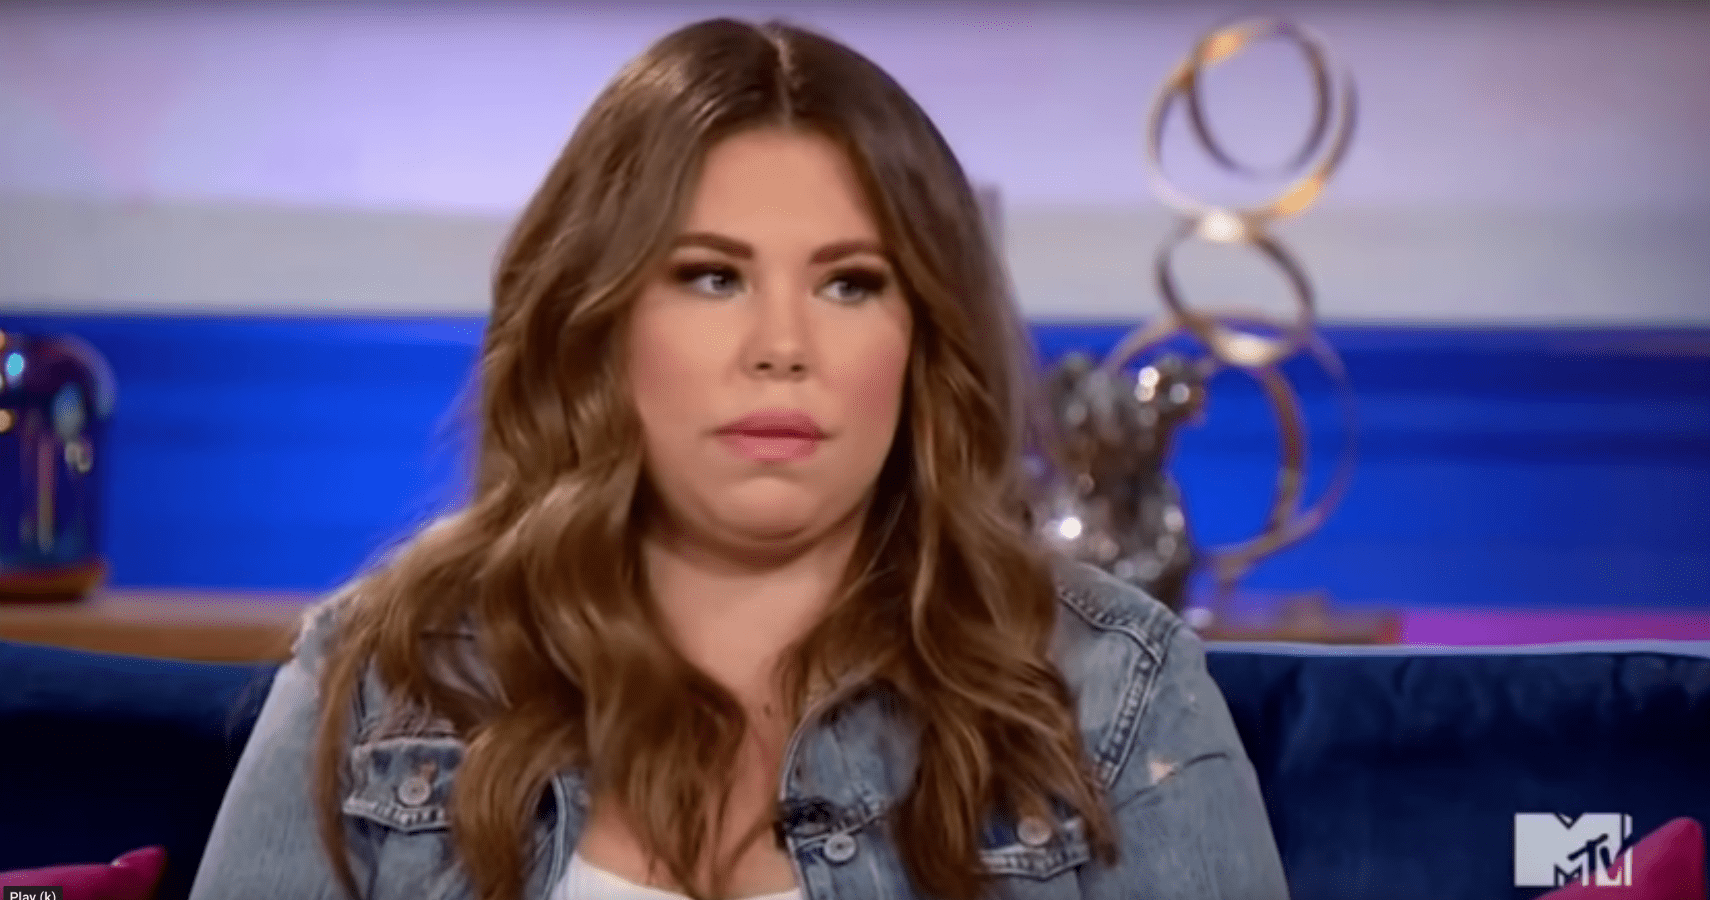 """kailyn-lowry-slams-chris-lopez-for-tattooing-their-sons-name-on-his-forehead-but-not-doing-anything-for-him"""